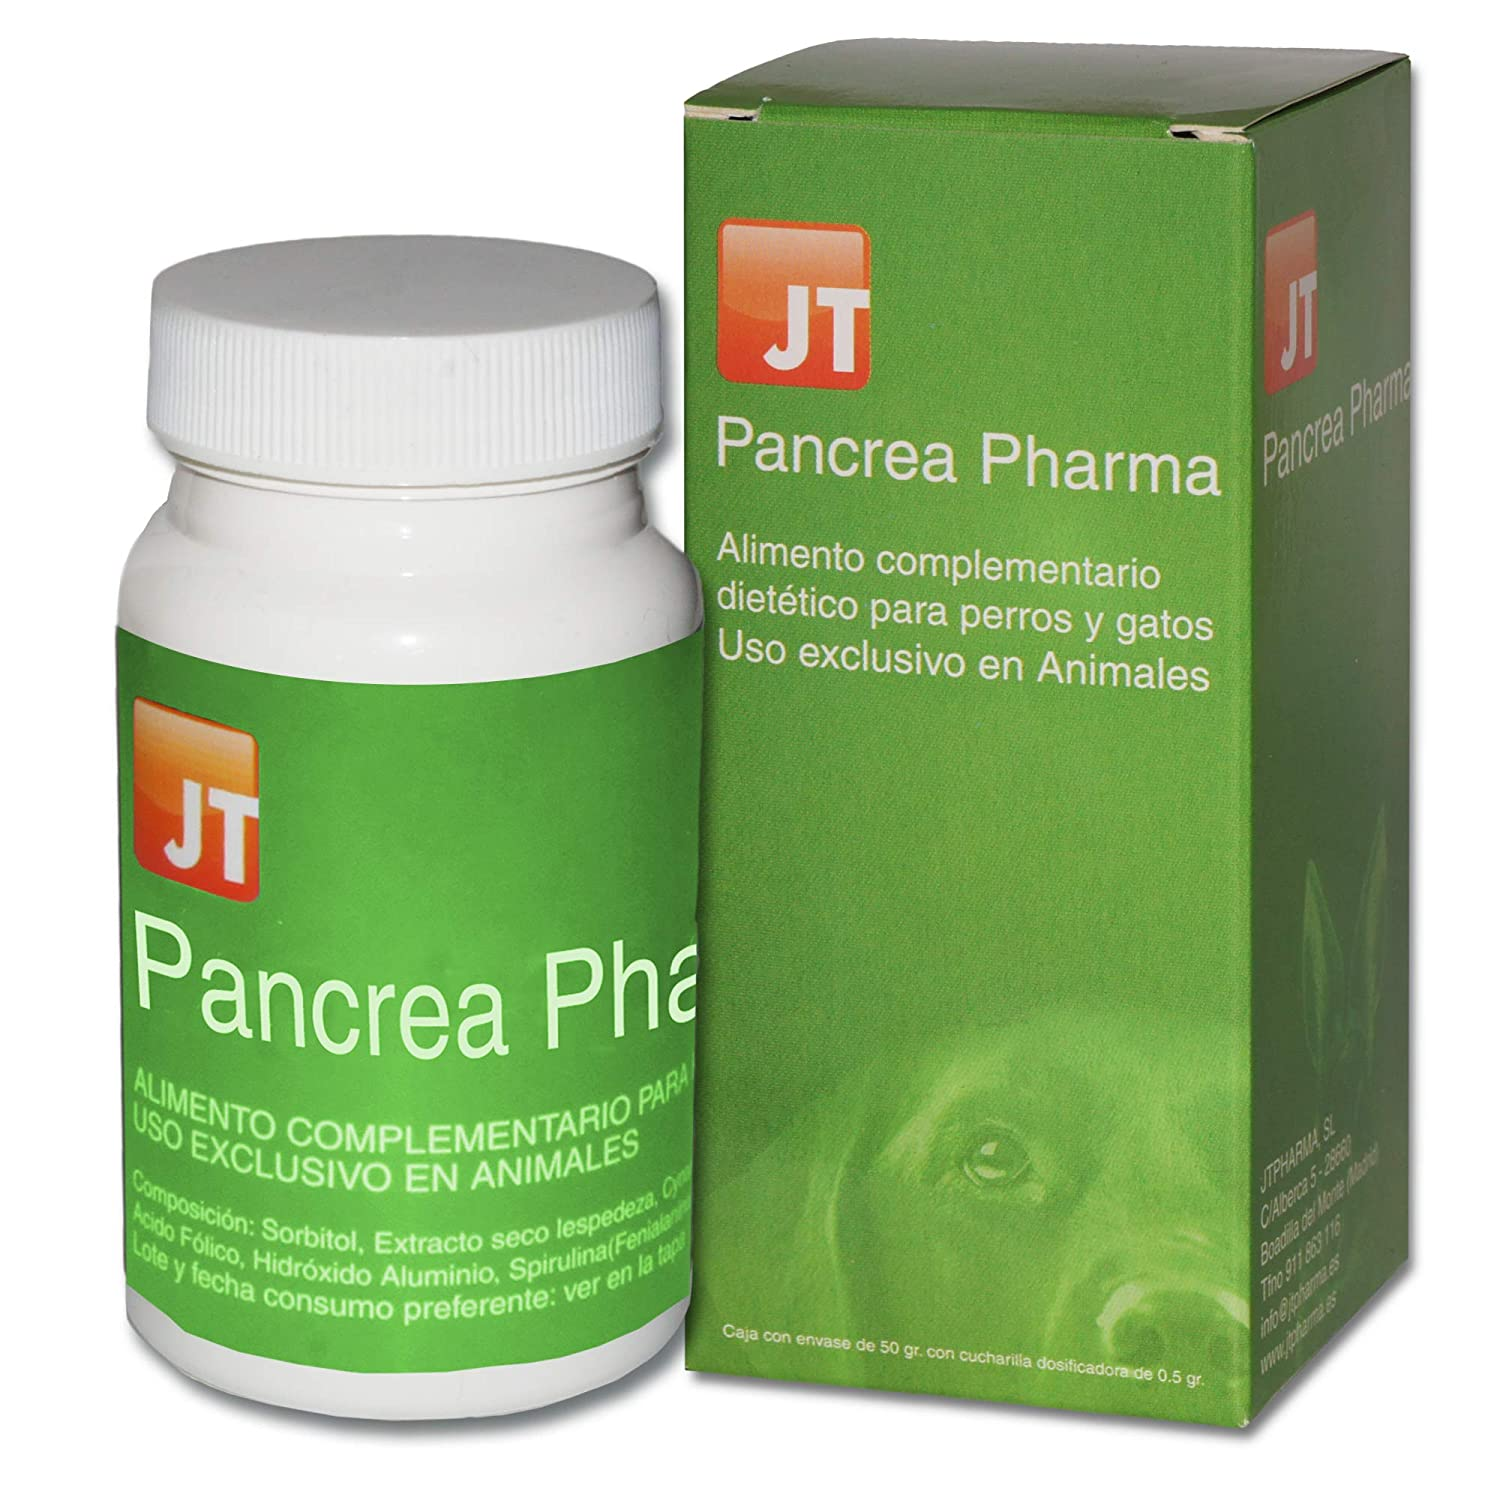 JTPharma 163106 Pancrea Pharma - 50 gr: Amazon.es: Productos ...